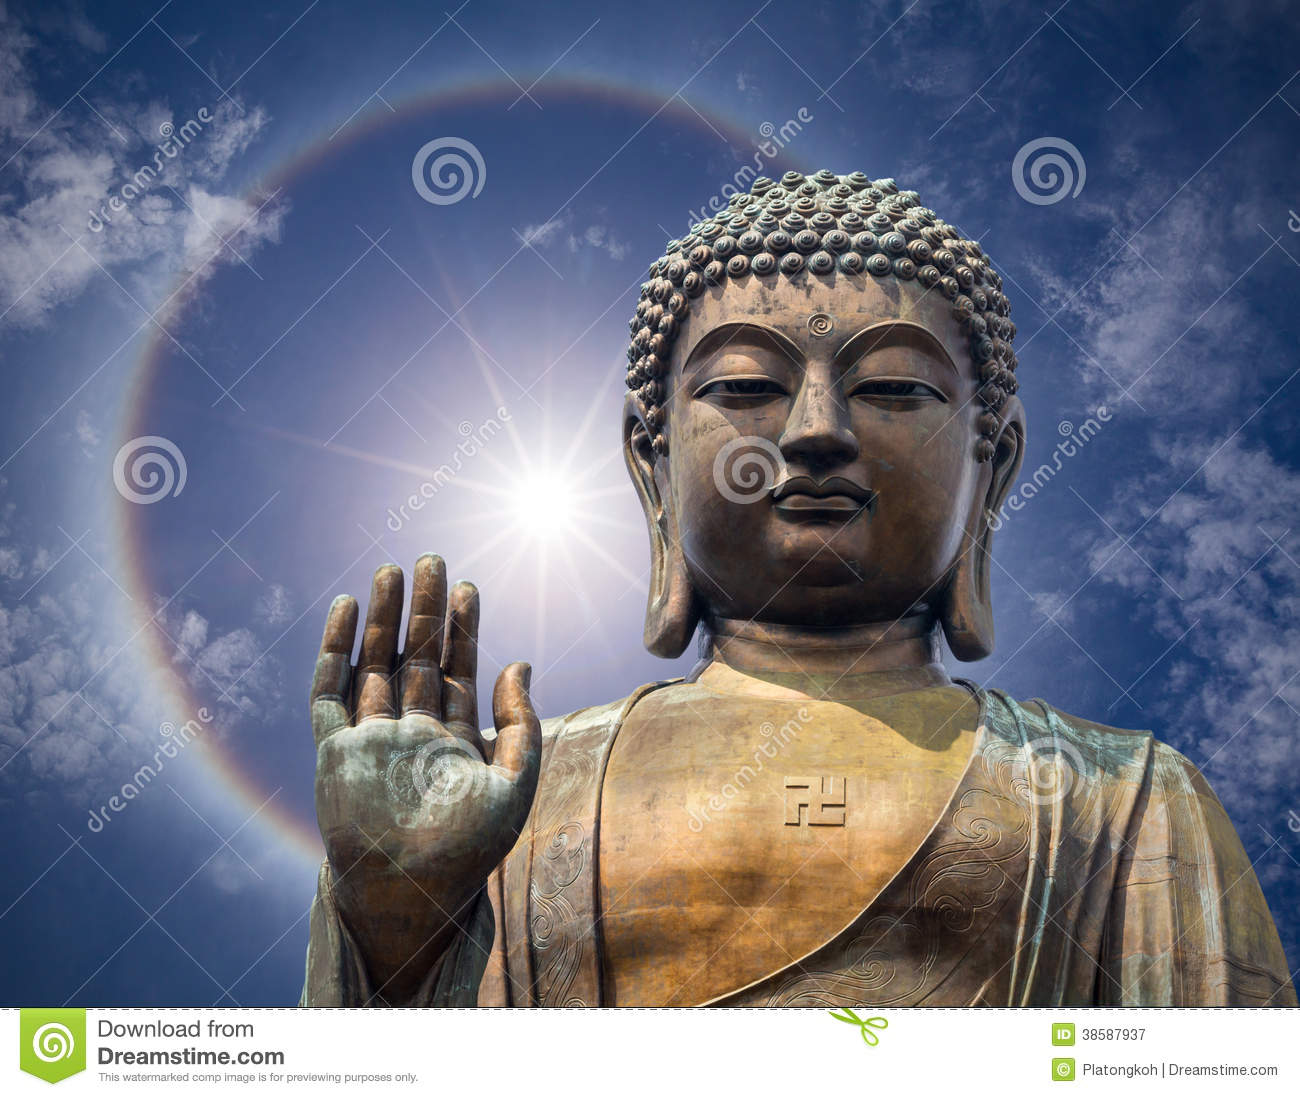 big sky buddhist dating site Australia's most trusted dating site - rsvp advanced search capabilities to help find someone for love & relationships free to browse & join.